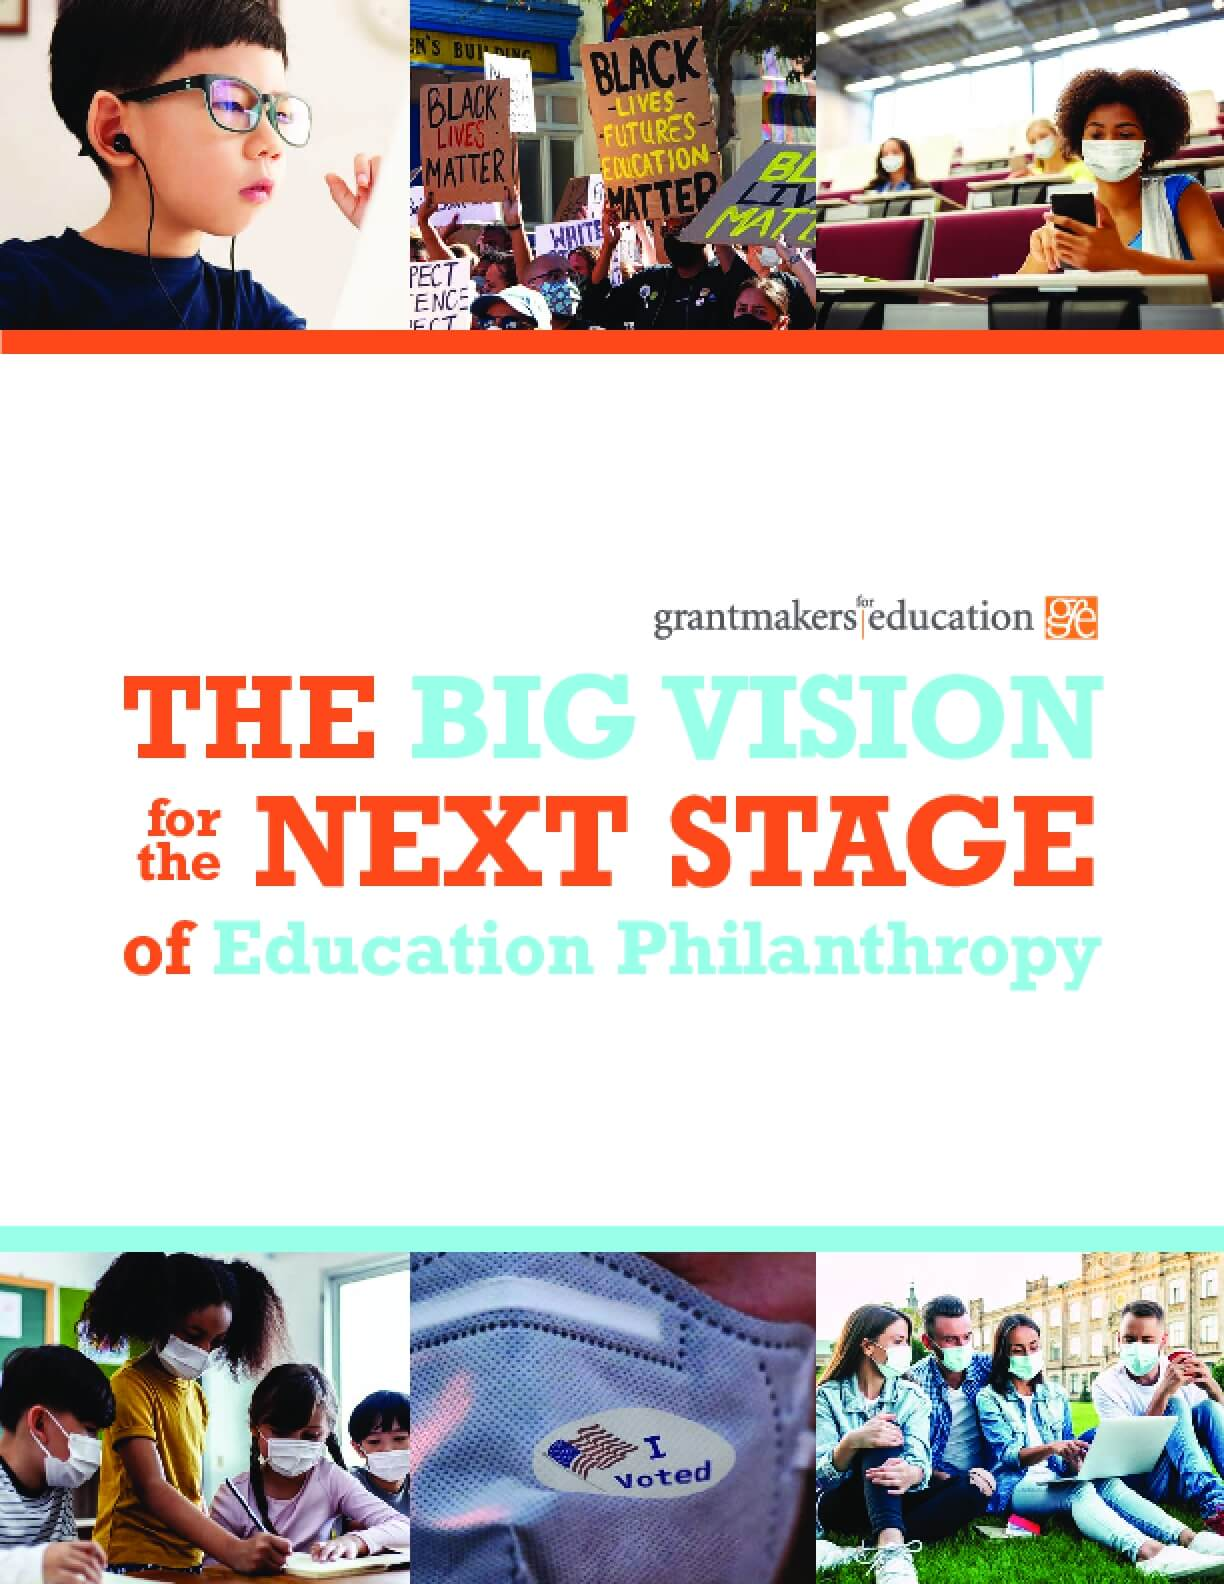 The Big Vision for the Next Stage of Education Philanthropy